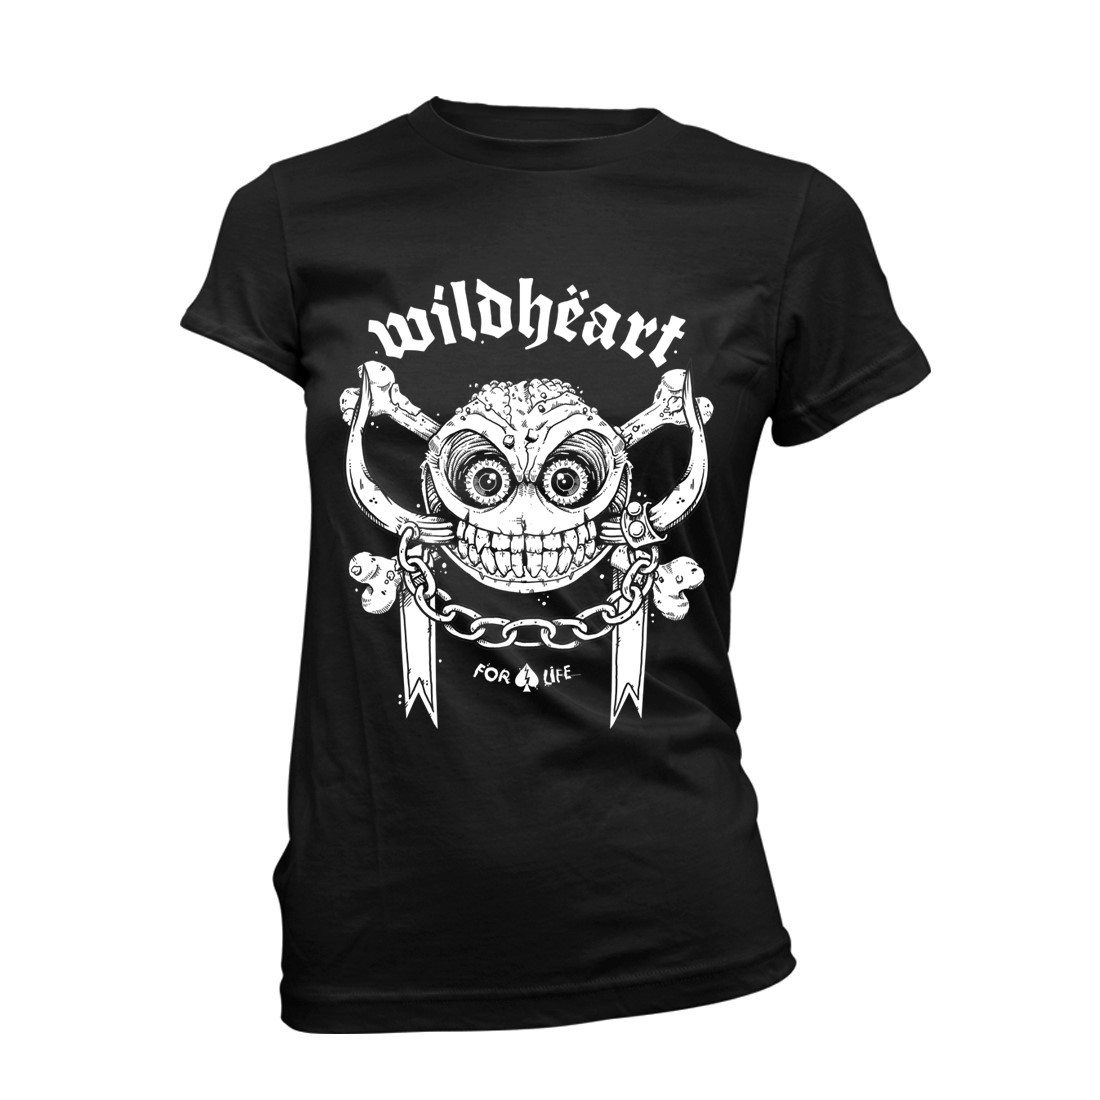 Snagglebones – Girls Black Tee